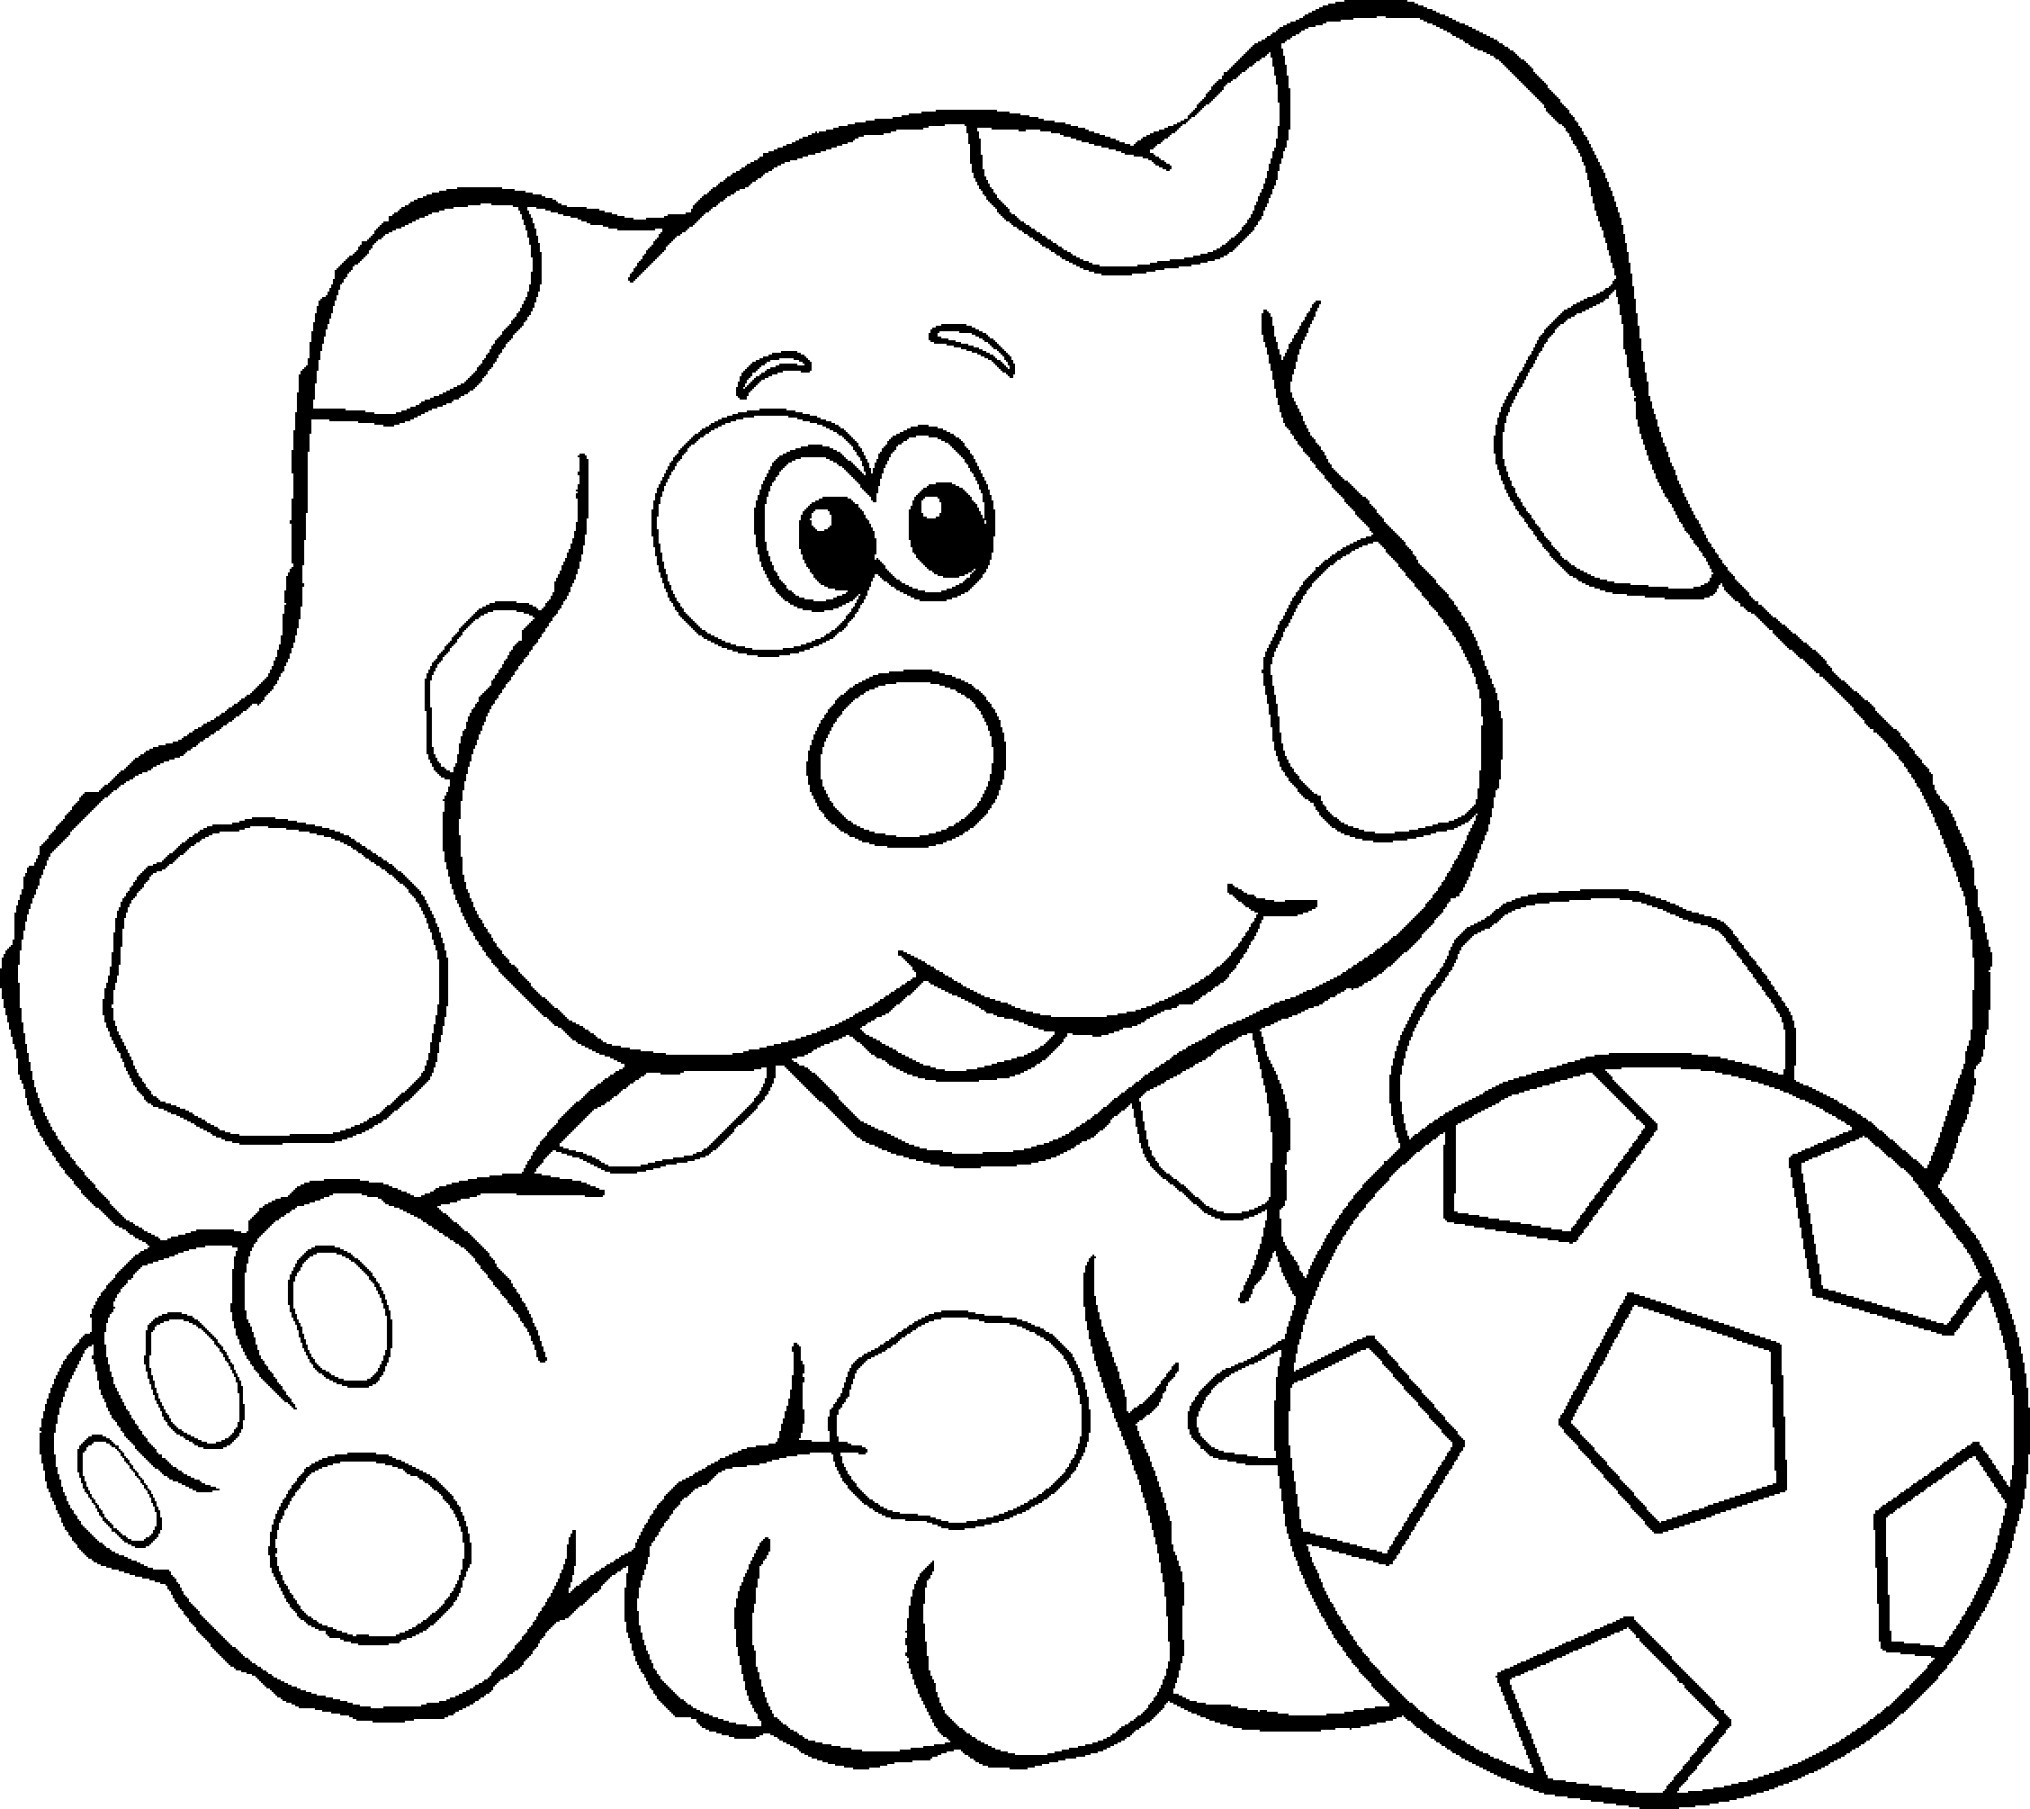 blues coloring pages free printable blues clues coloring pages for kids coloring blues pages